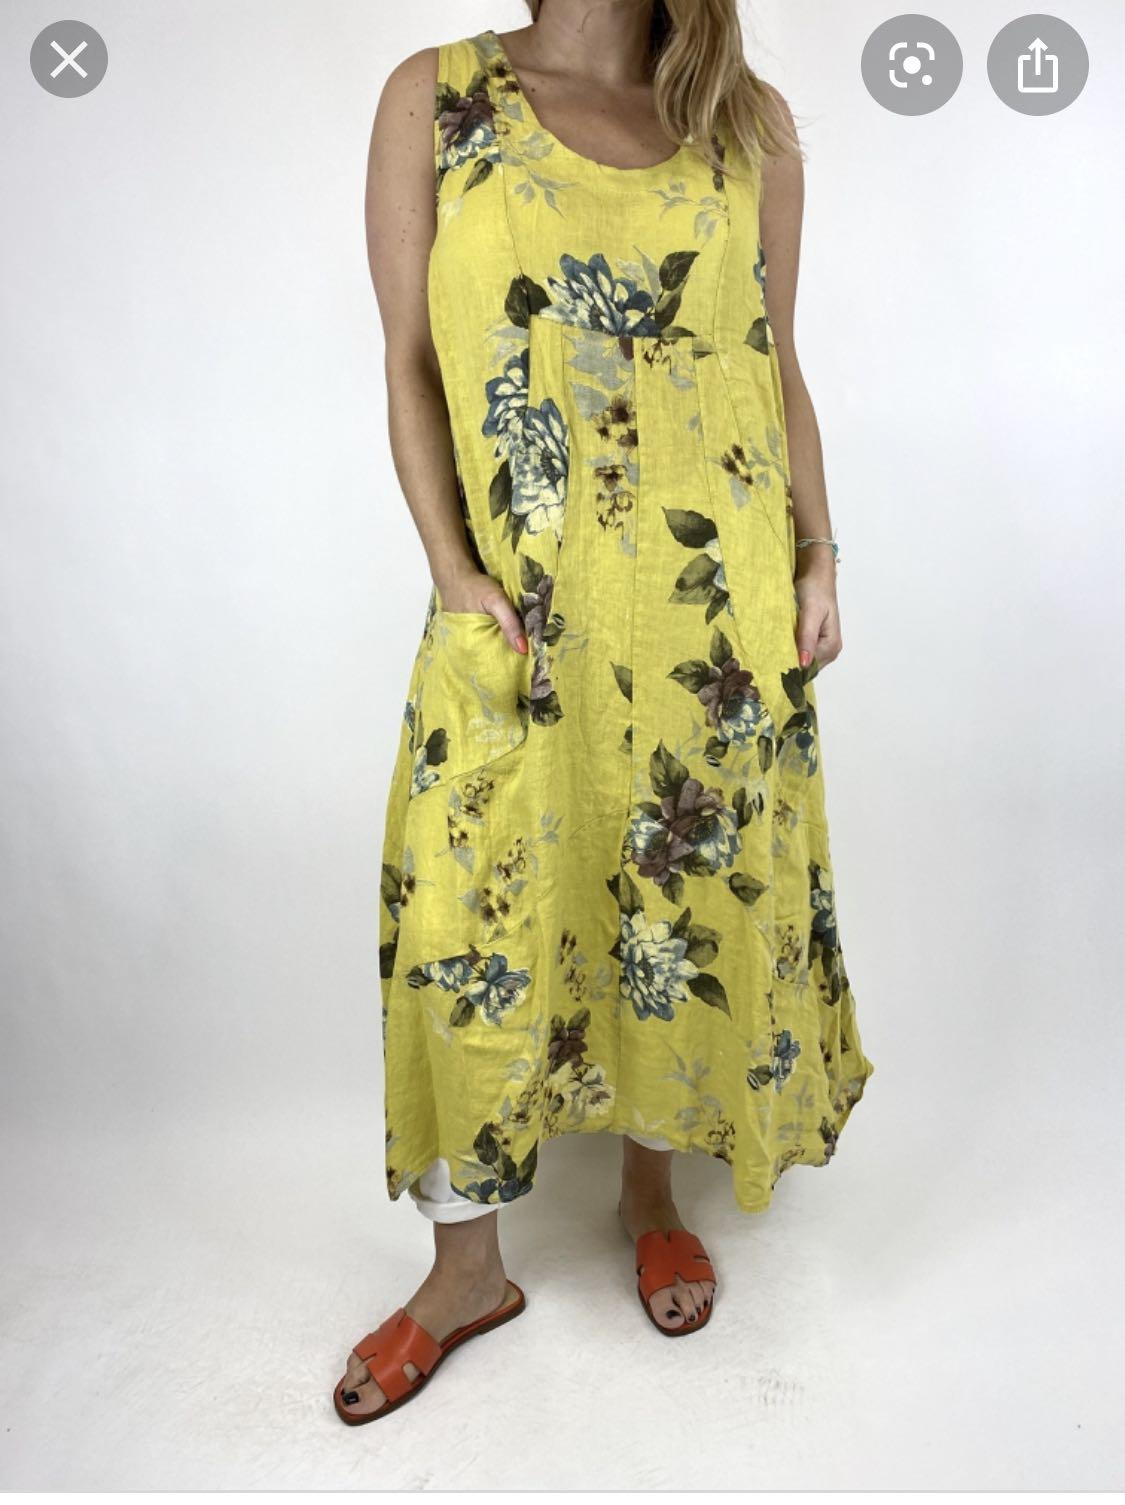 Yellow flower dress/cover up 100% linen Made in Italy size S/M/L/XL 97% cotton $60